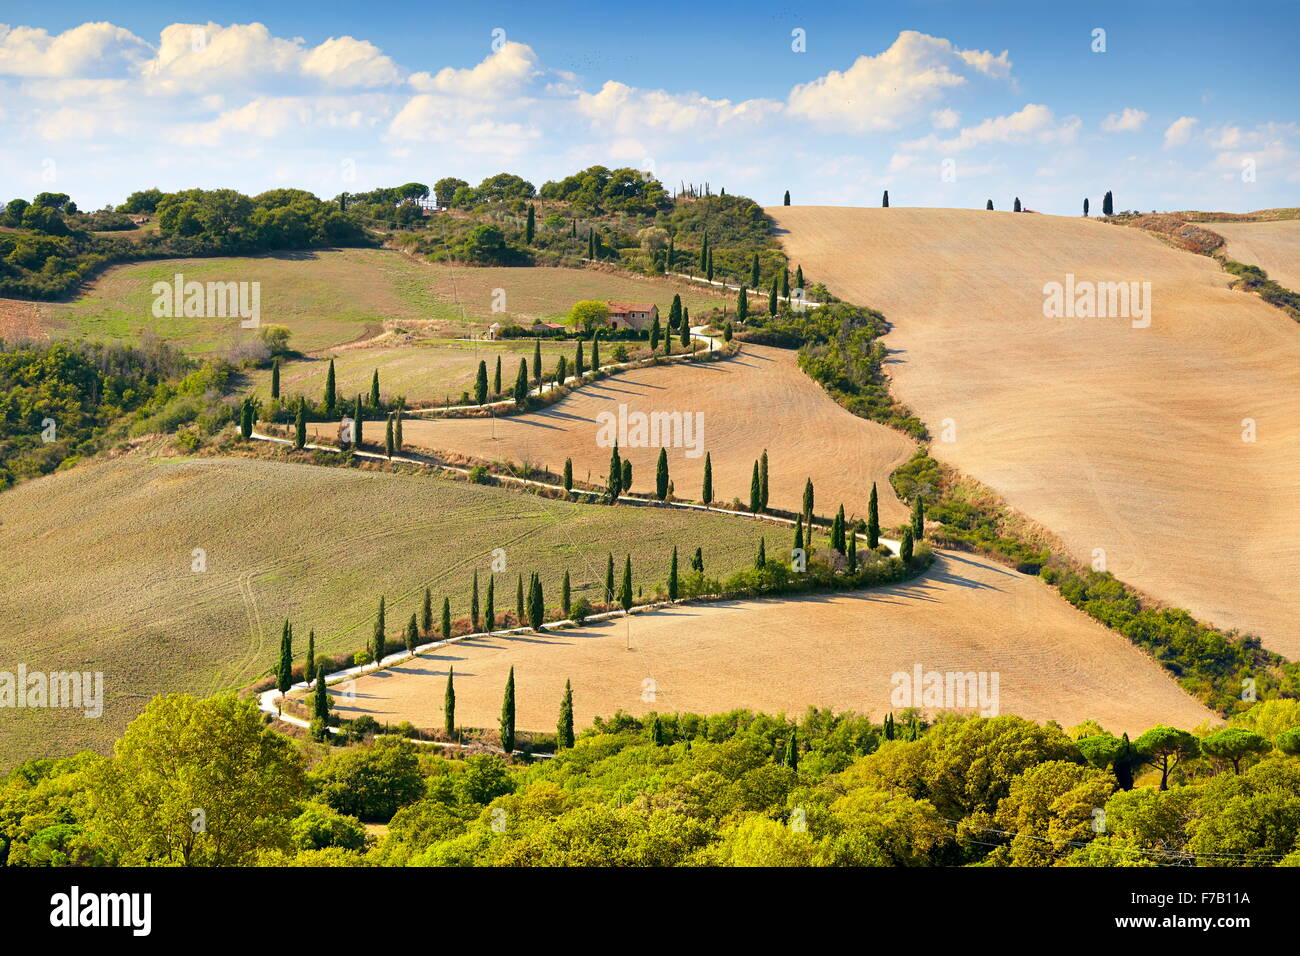 Road with cypresses, Tuscany, Italy Stock Photo